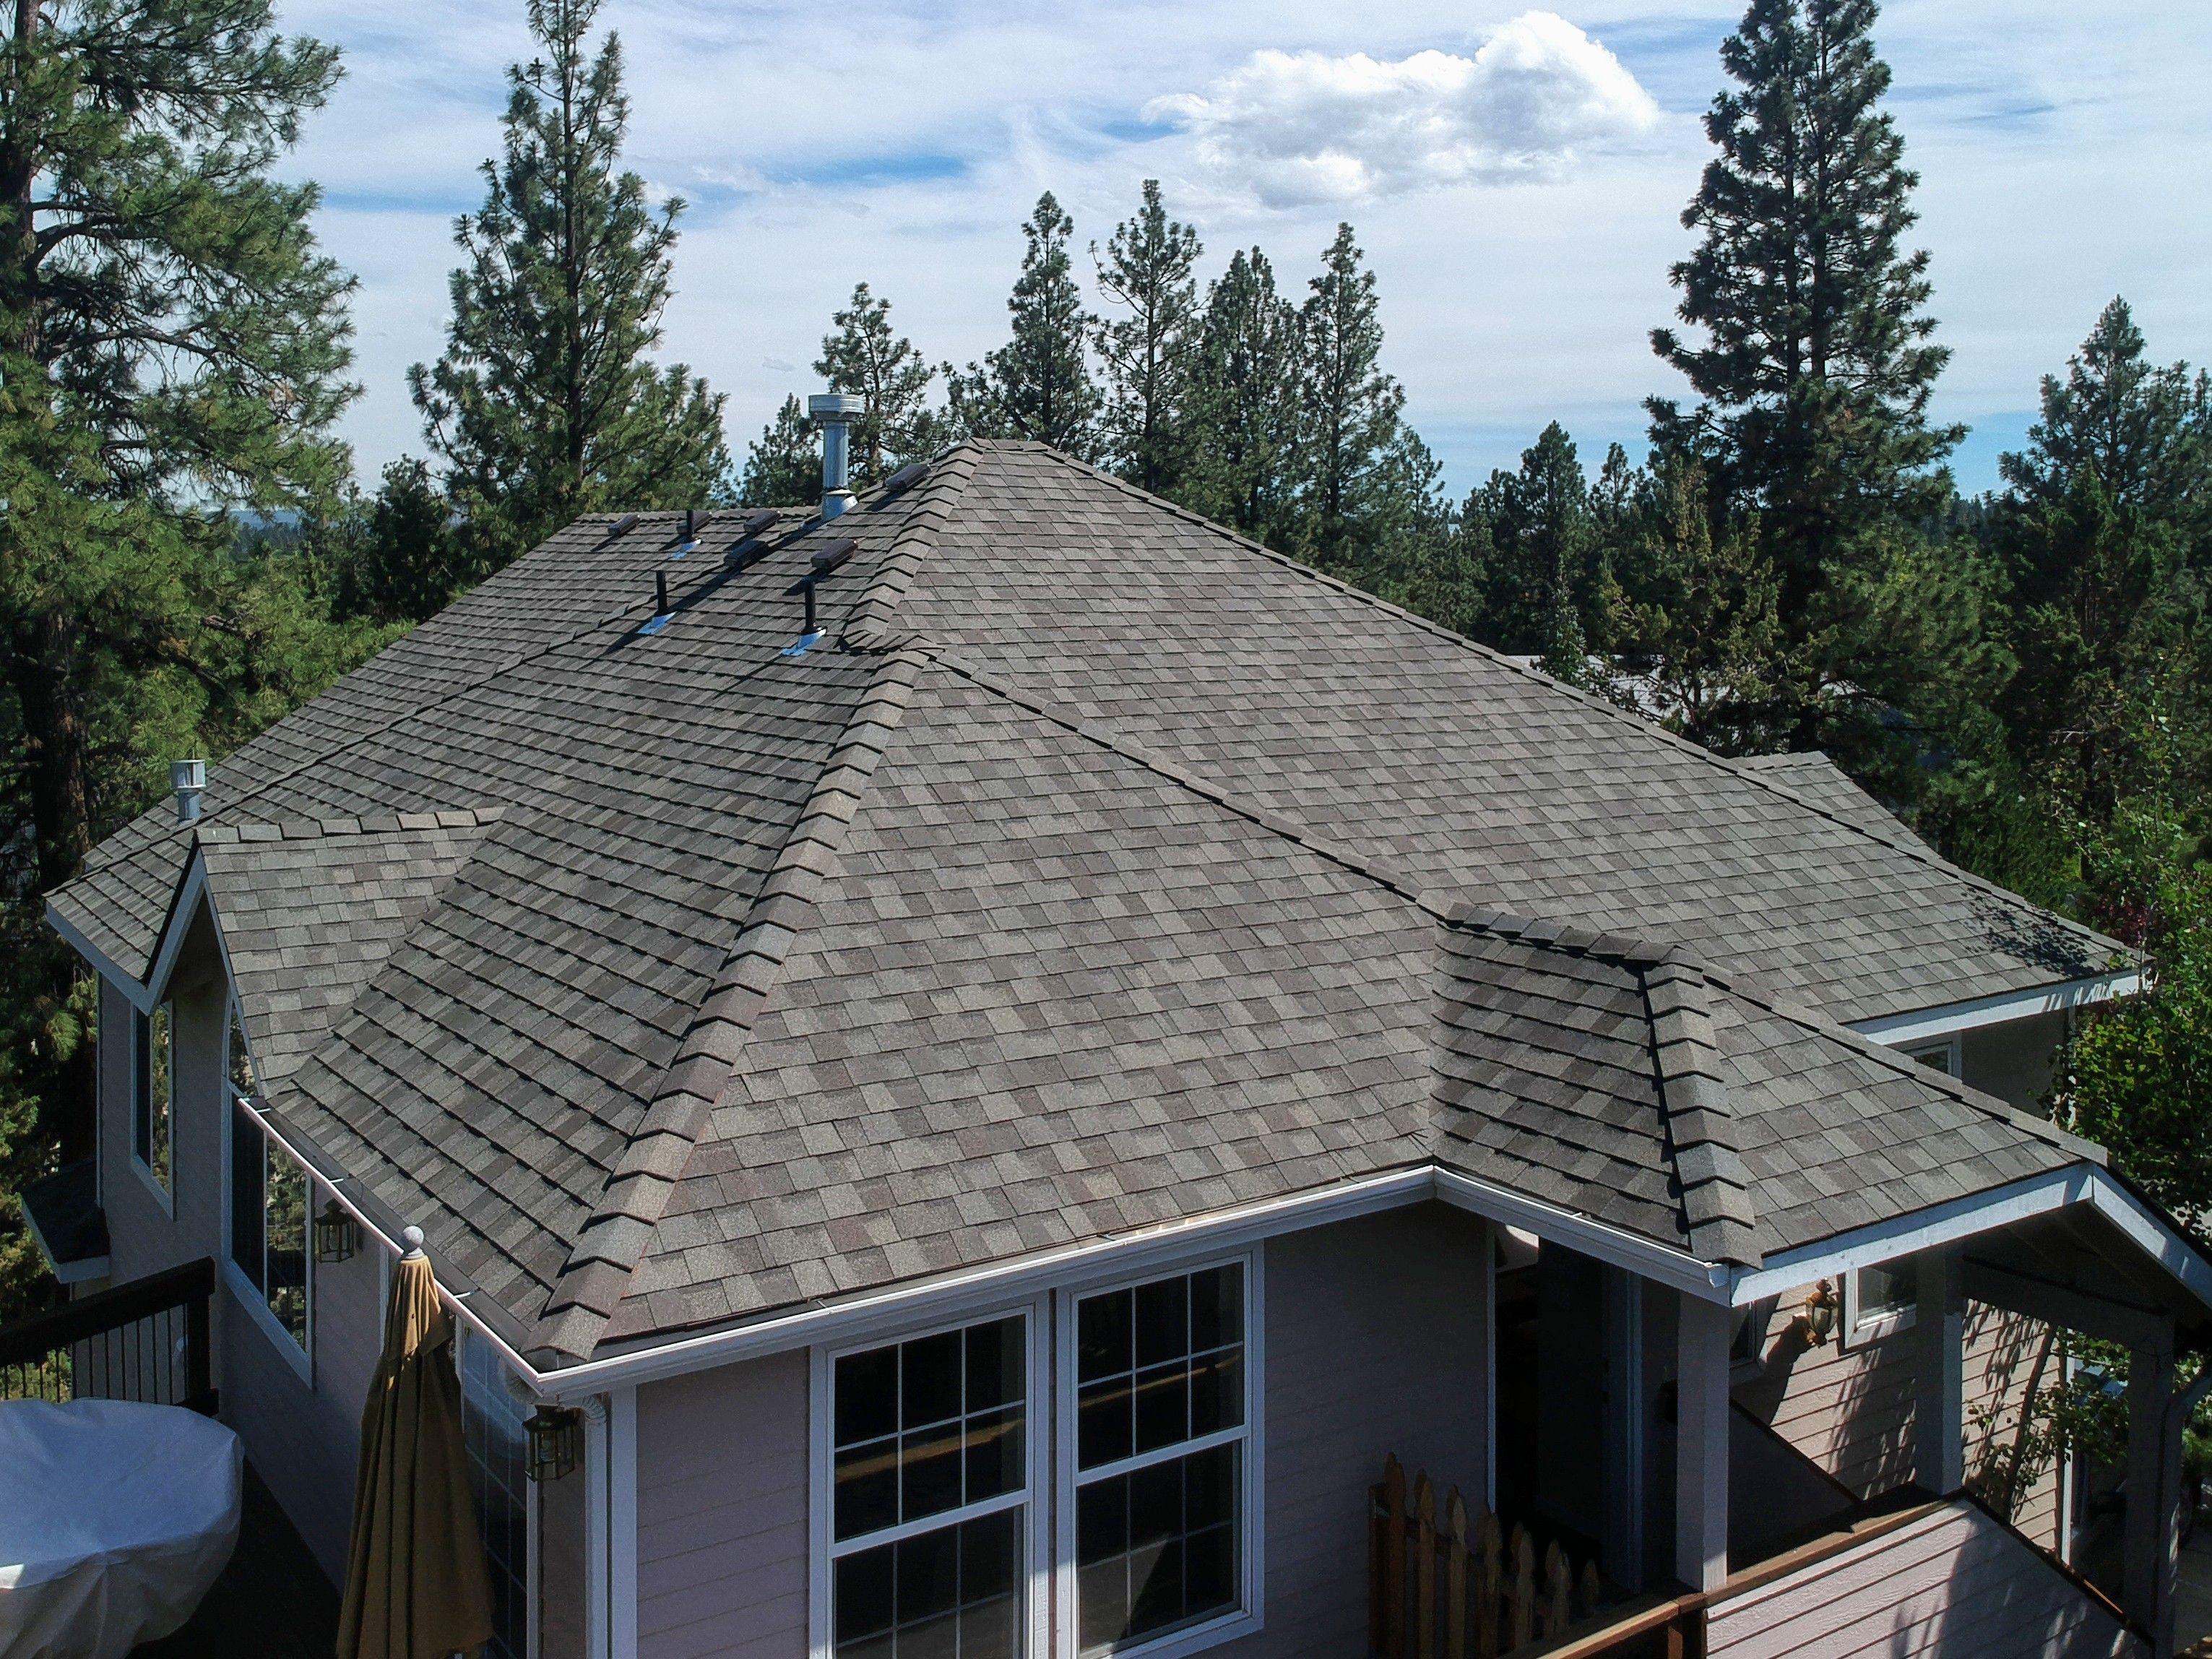 Pin By Deschutes Roofing On Www Deschutesroofing Com Roofing Services Roofing Affordable Roofing